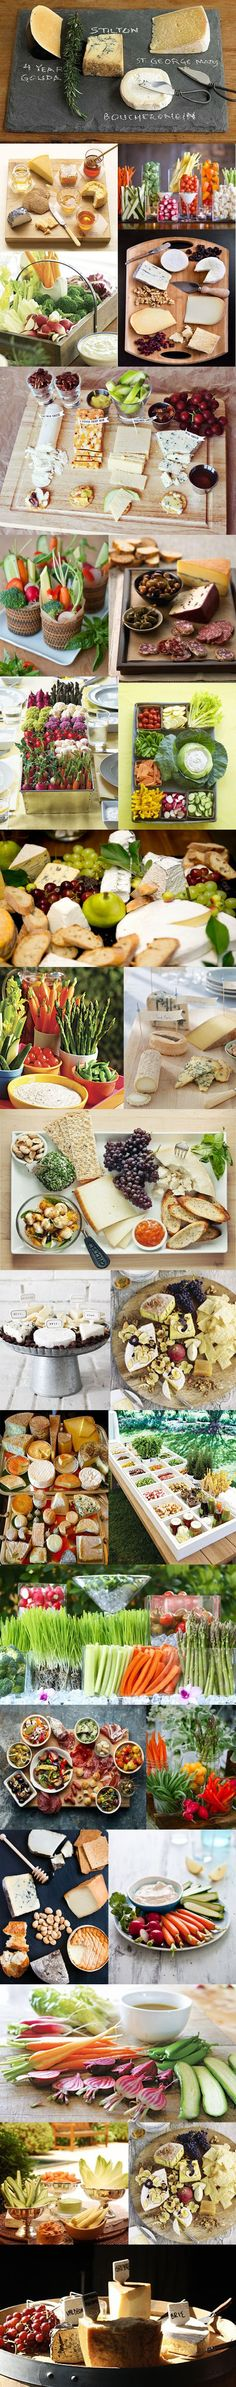 39 Ideas Appetizers For Party Display Wine Tasting For 2019 – Snacks 2020 Wine And Cheese Party, Wine Tasting Party, Wine Parties, Wine Cheese, Snacks Für Party, Appetizers For Party, Appetizer Recipes, Party Drinks, Appetizer Display